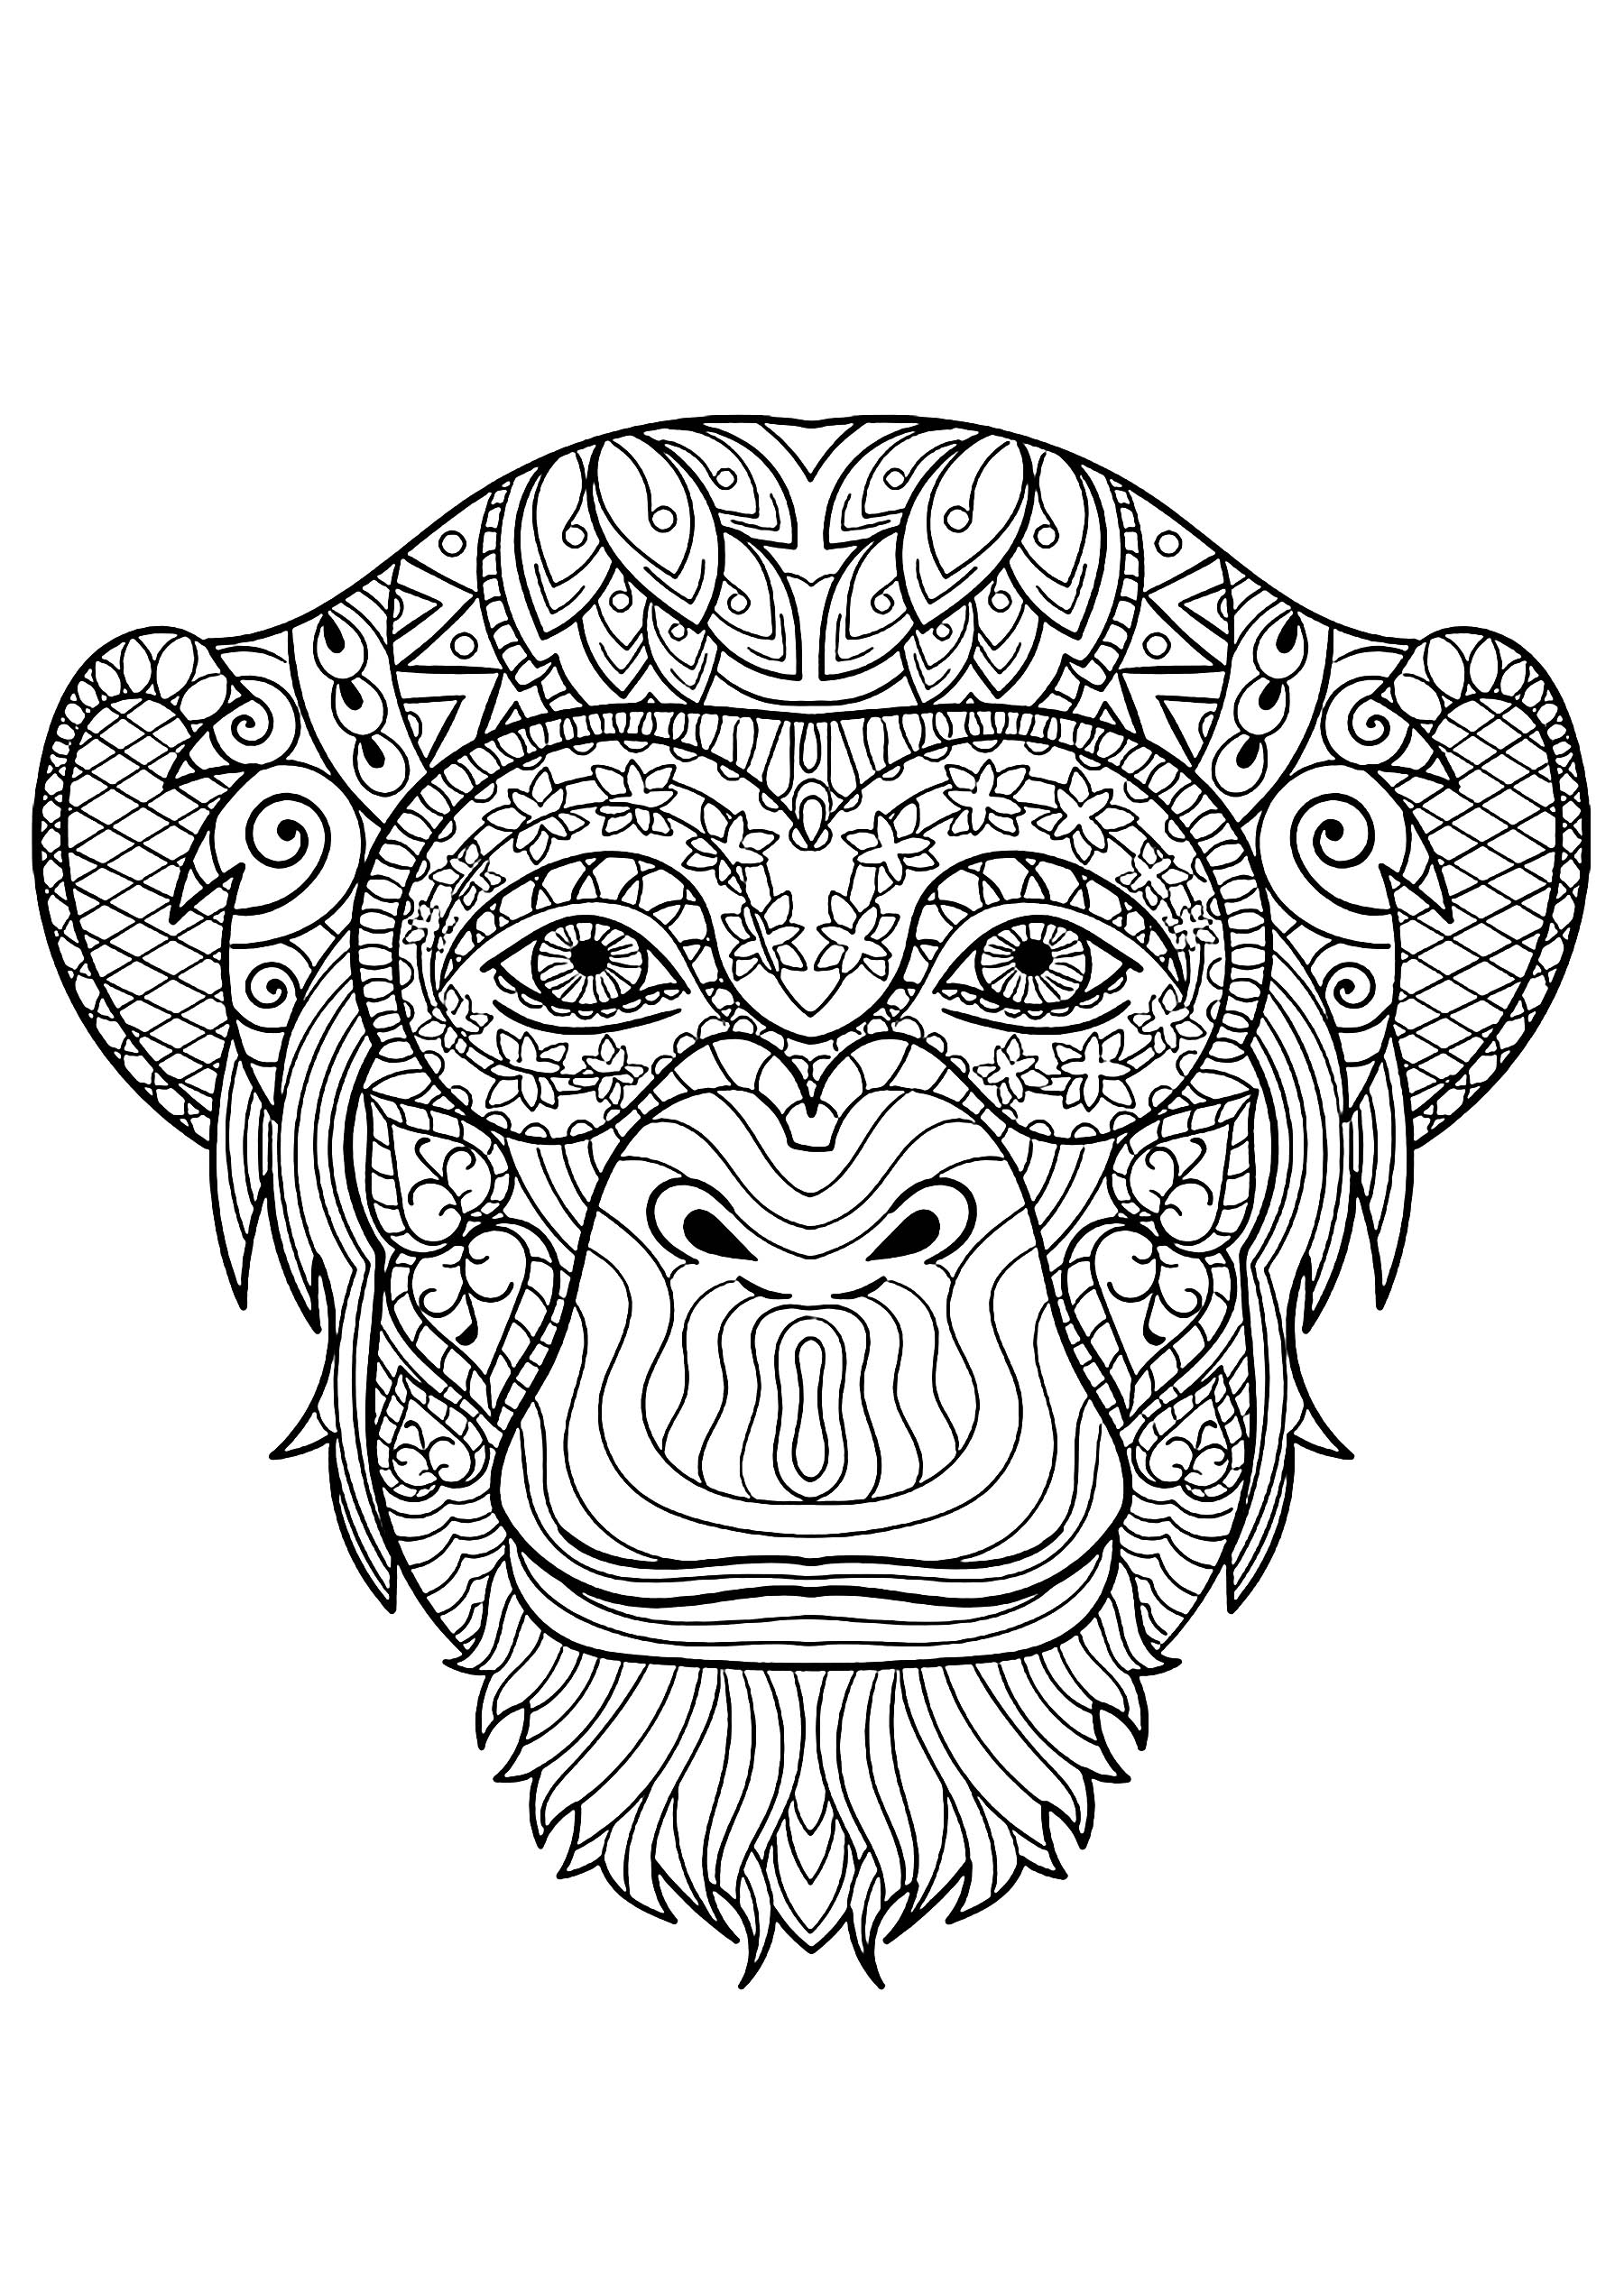 Beautiful monkey head to color, with beautiful patterns